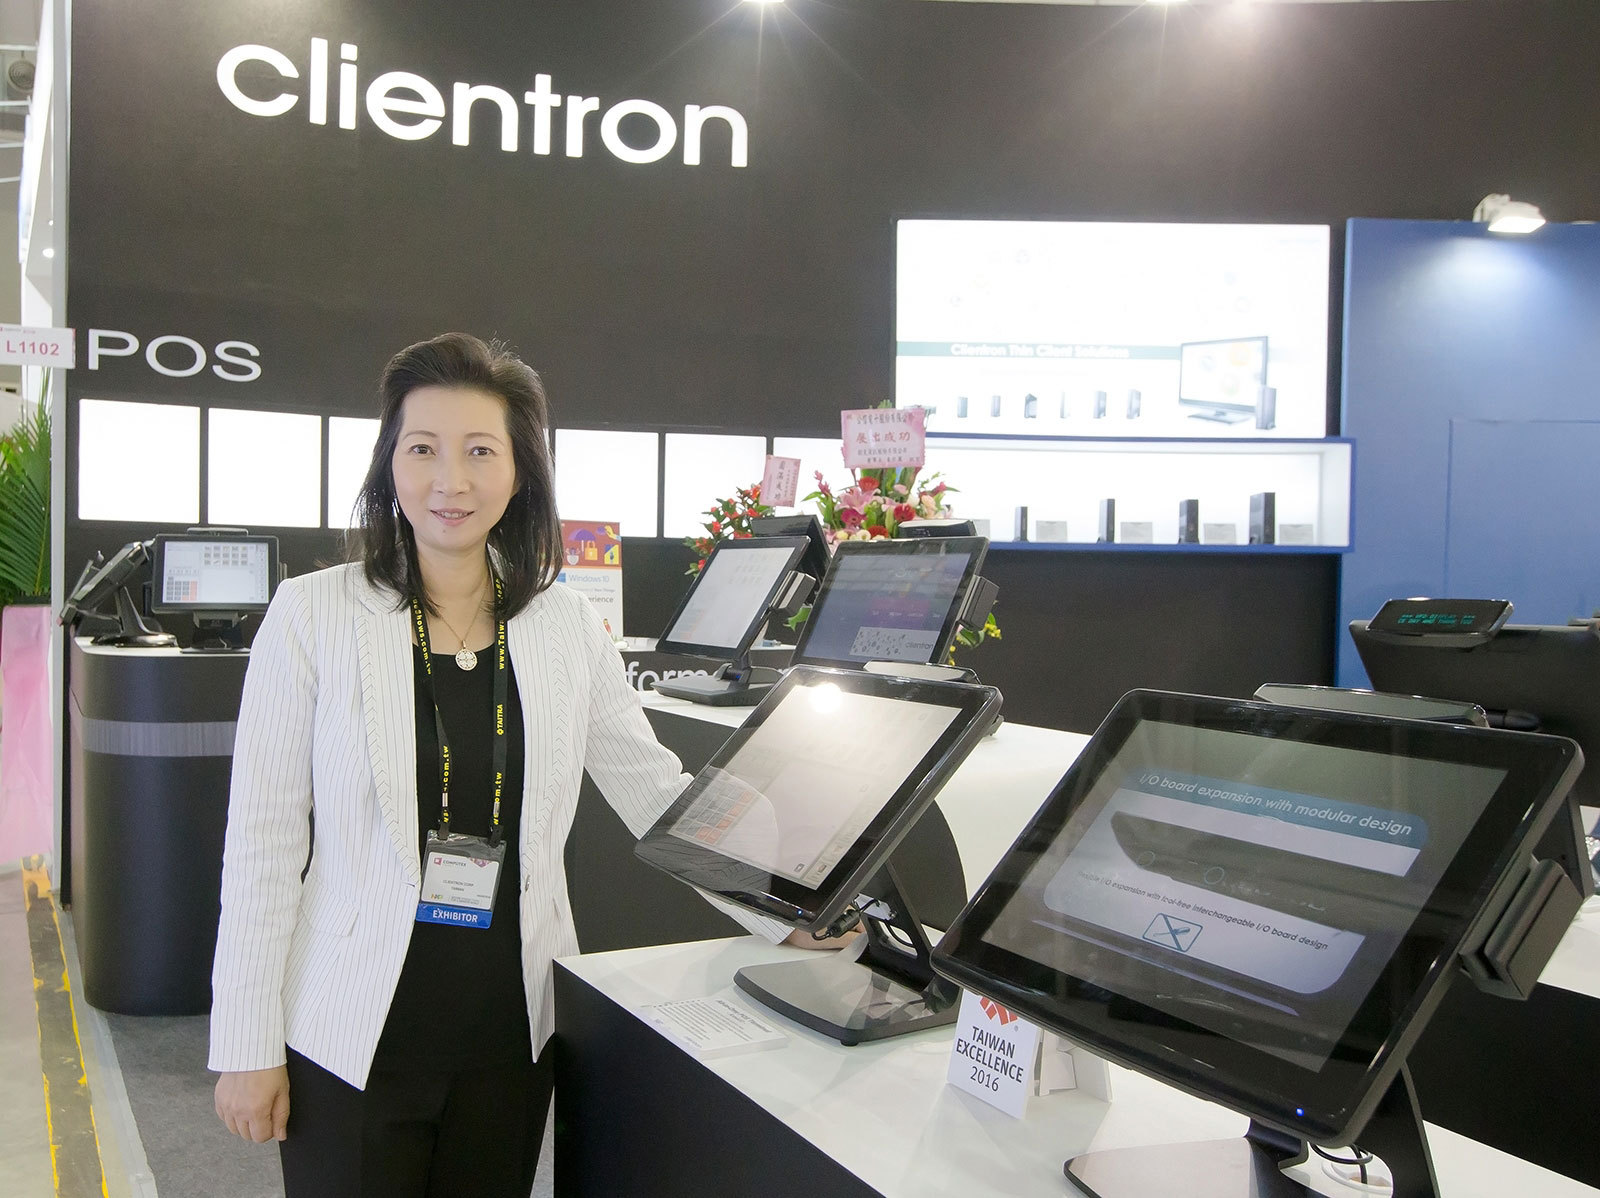 """""""Clientron offers comprehensive Thin Client and POS products lineup at Computex 2016,"""" said Kelly Wu, President & CEO of Clientron. (Photo: Business Wire)"""